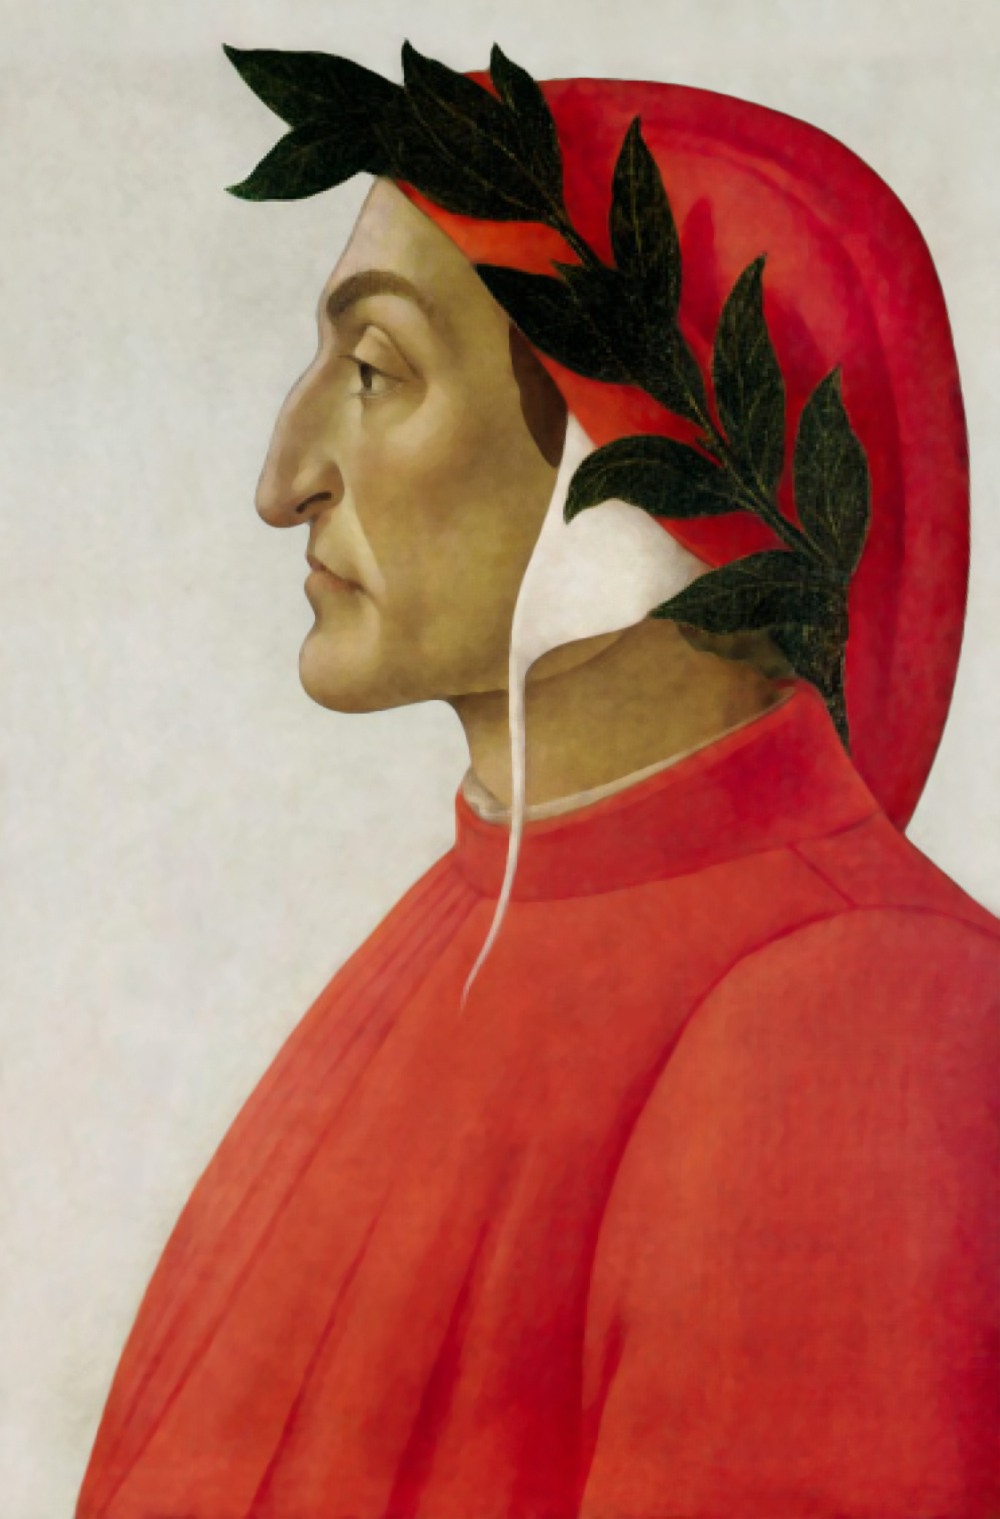 dante on monarchy